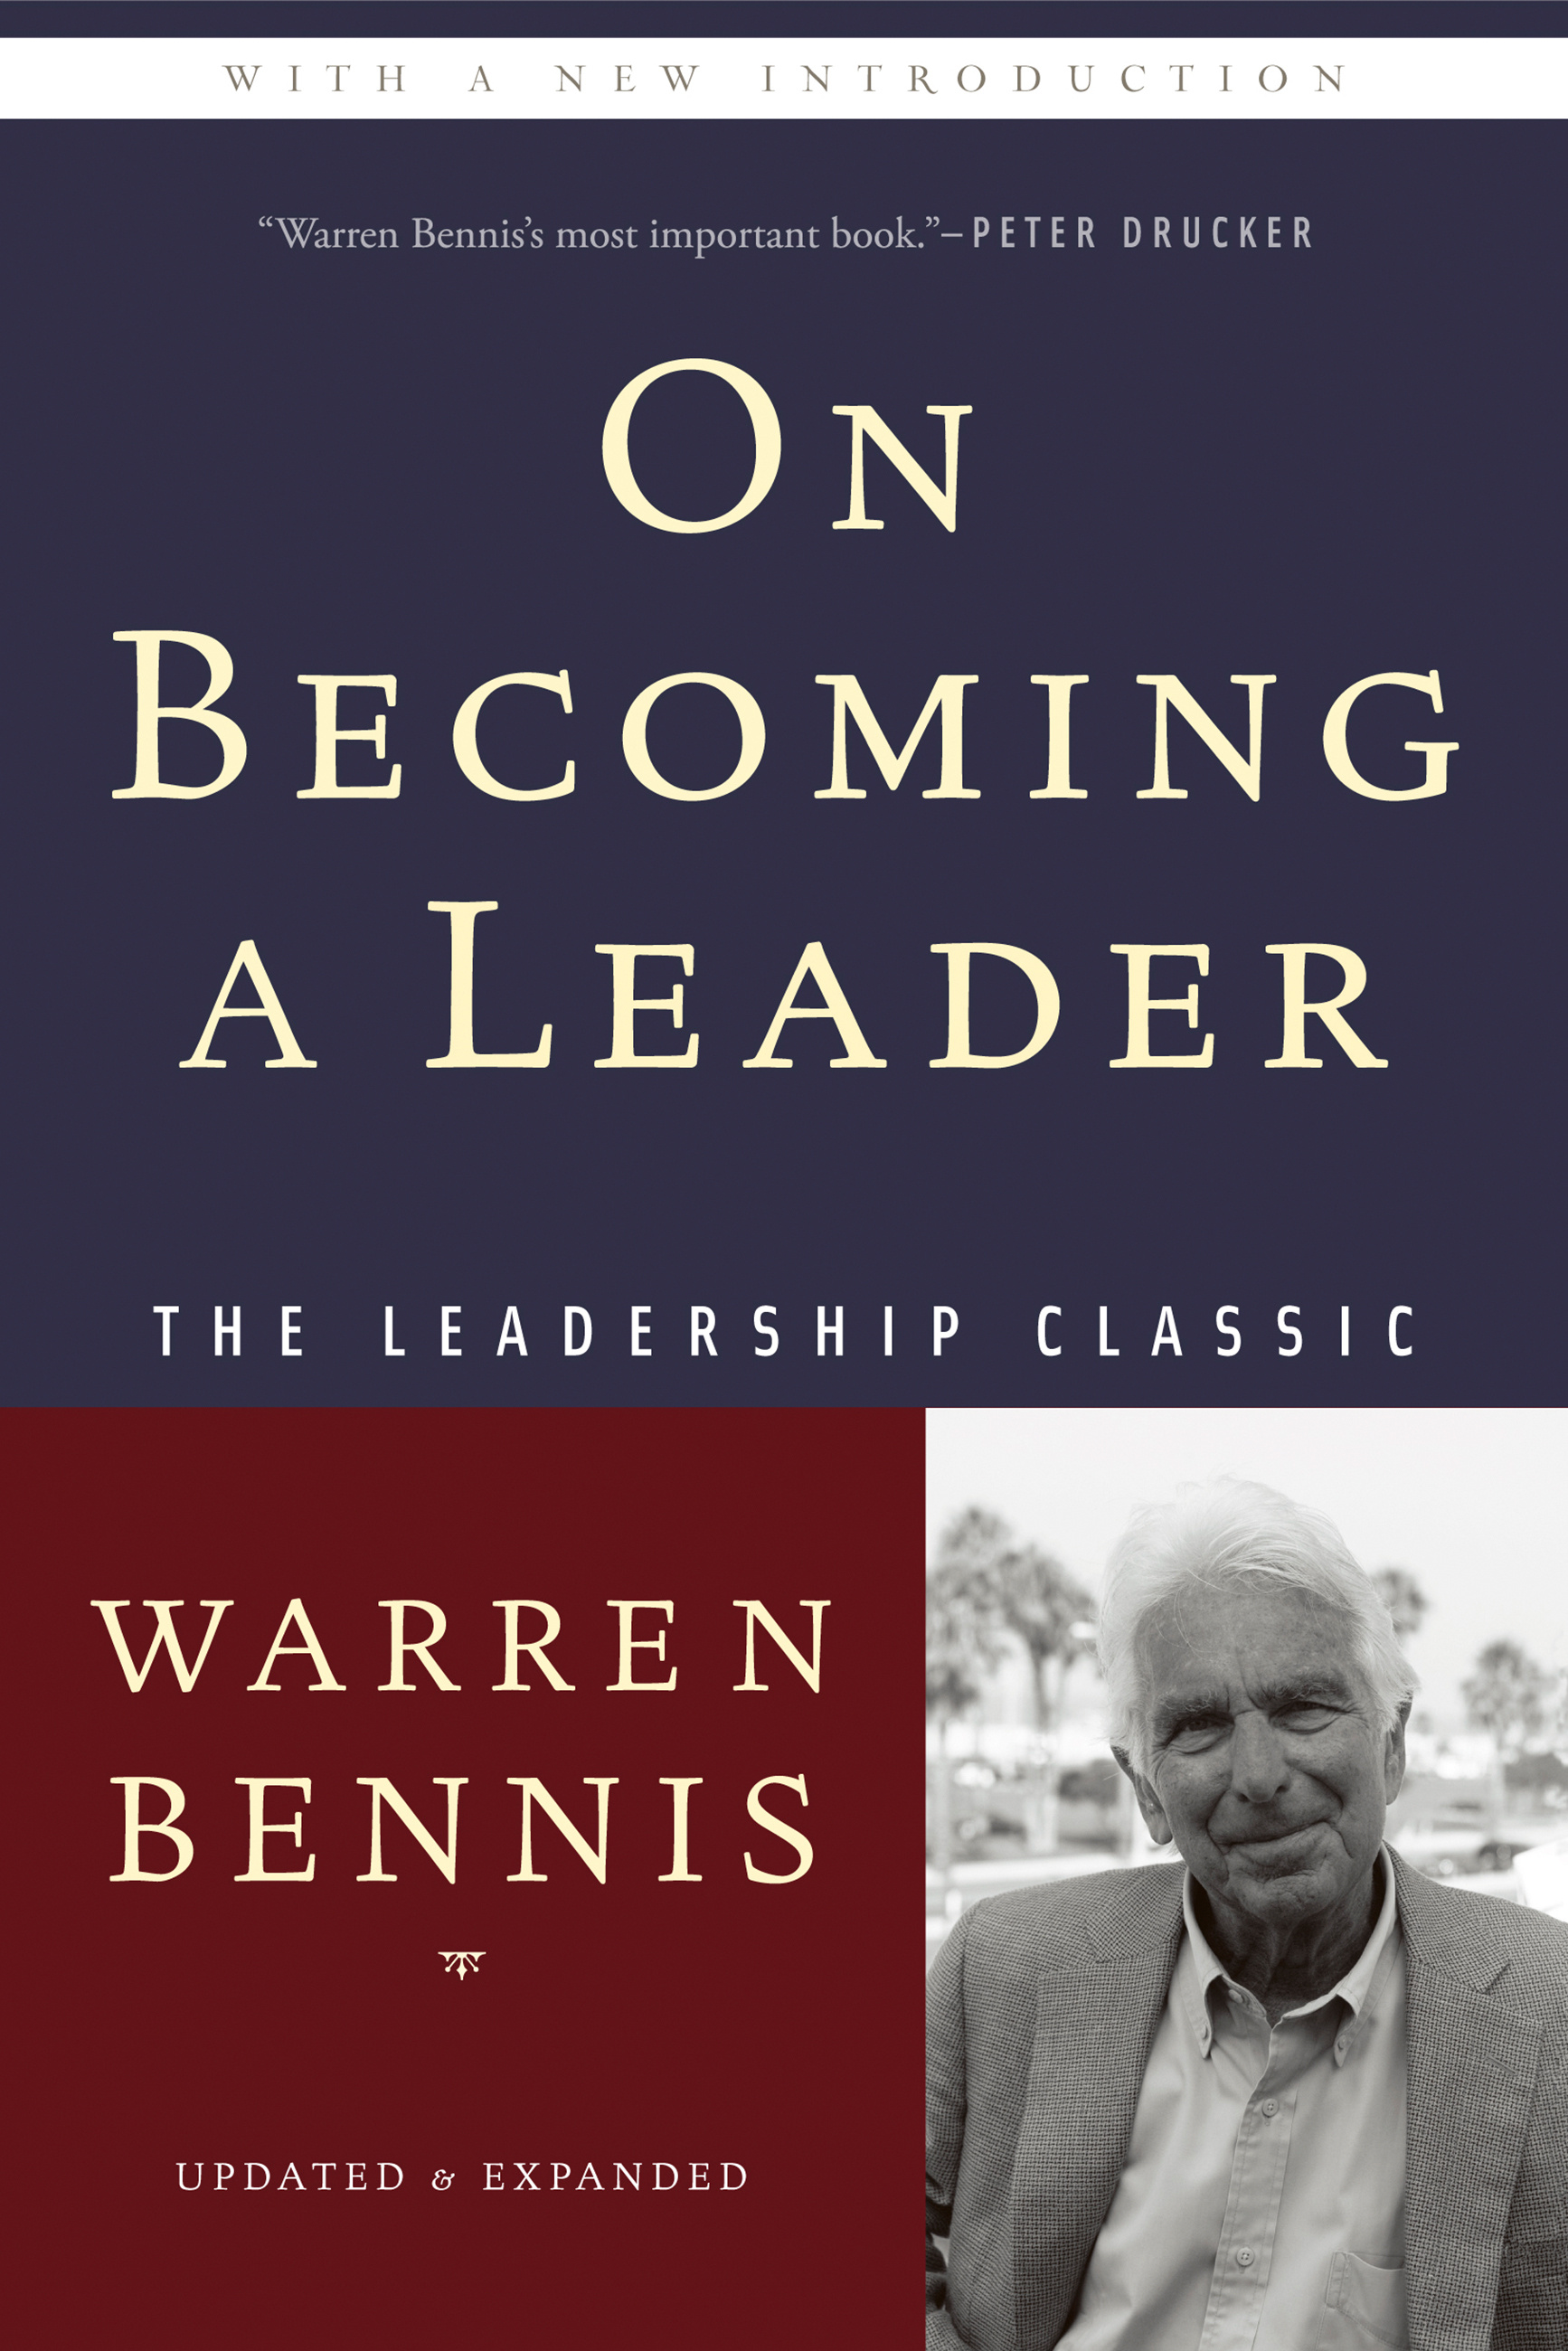 peter drucker versus warren bennis Edited by renowned leadership expert warren bennis  warren bennis is to leadership what peter drucker is to management both have had long.